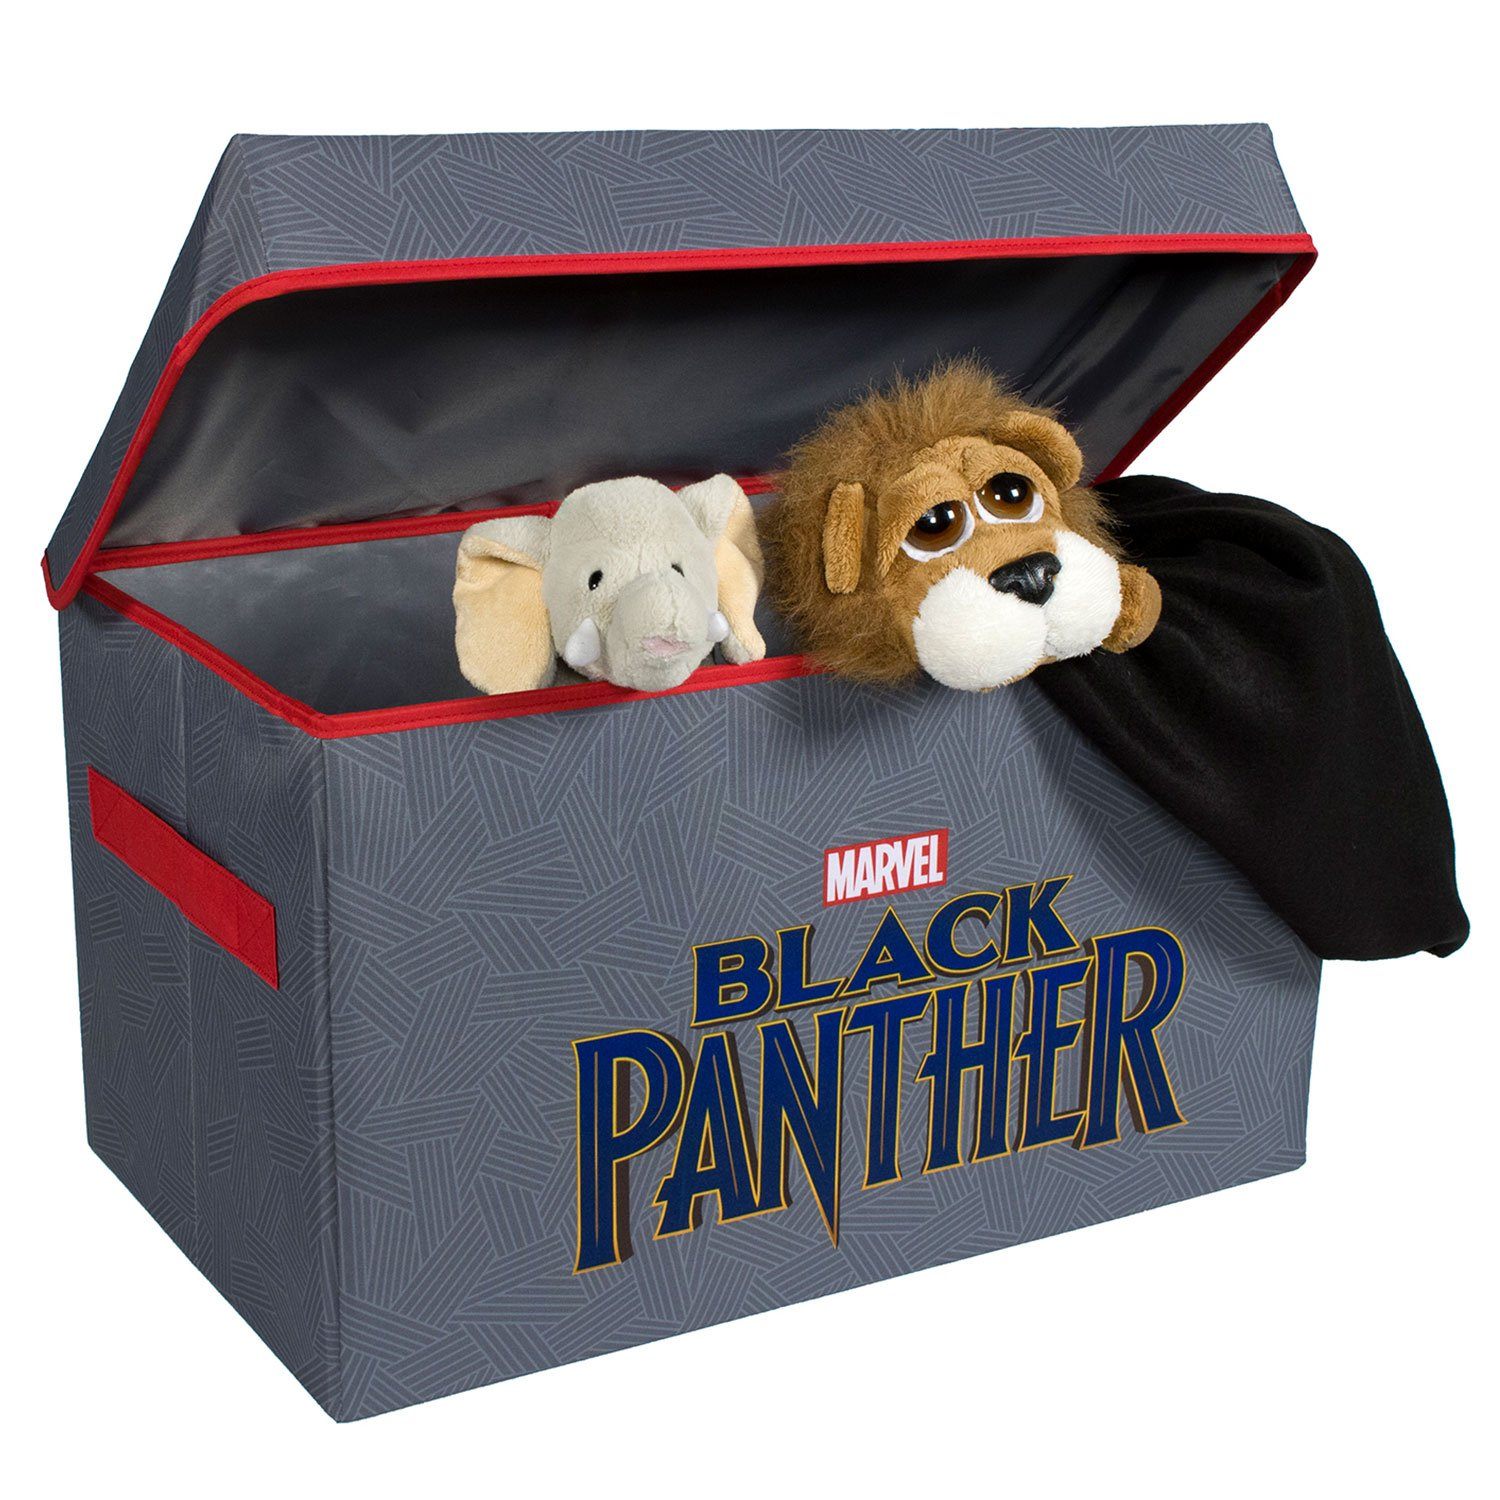 Black Panther Collapsible KidsToy Storage Chest byMarvel - Flip-Top Toy Organizer Bin for Closets, Kids Bedroom, Boys & Girls Toys - Foldable Toy Basket Organizer with Strong Handles & Design